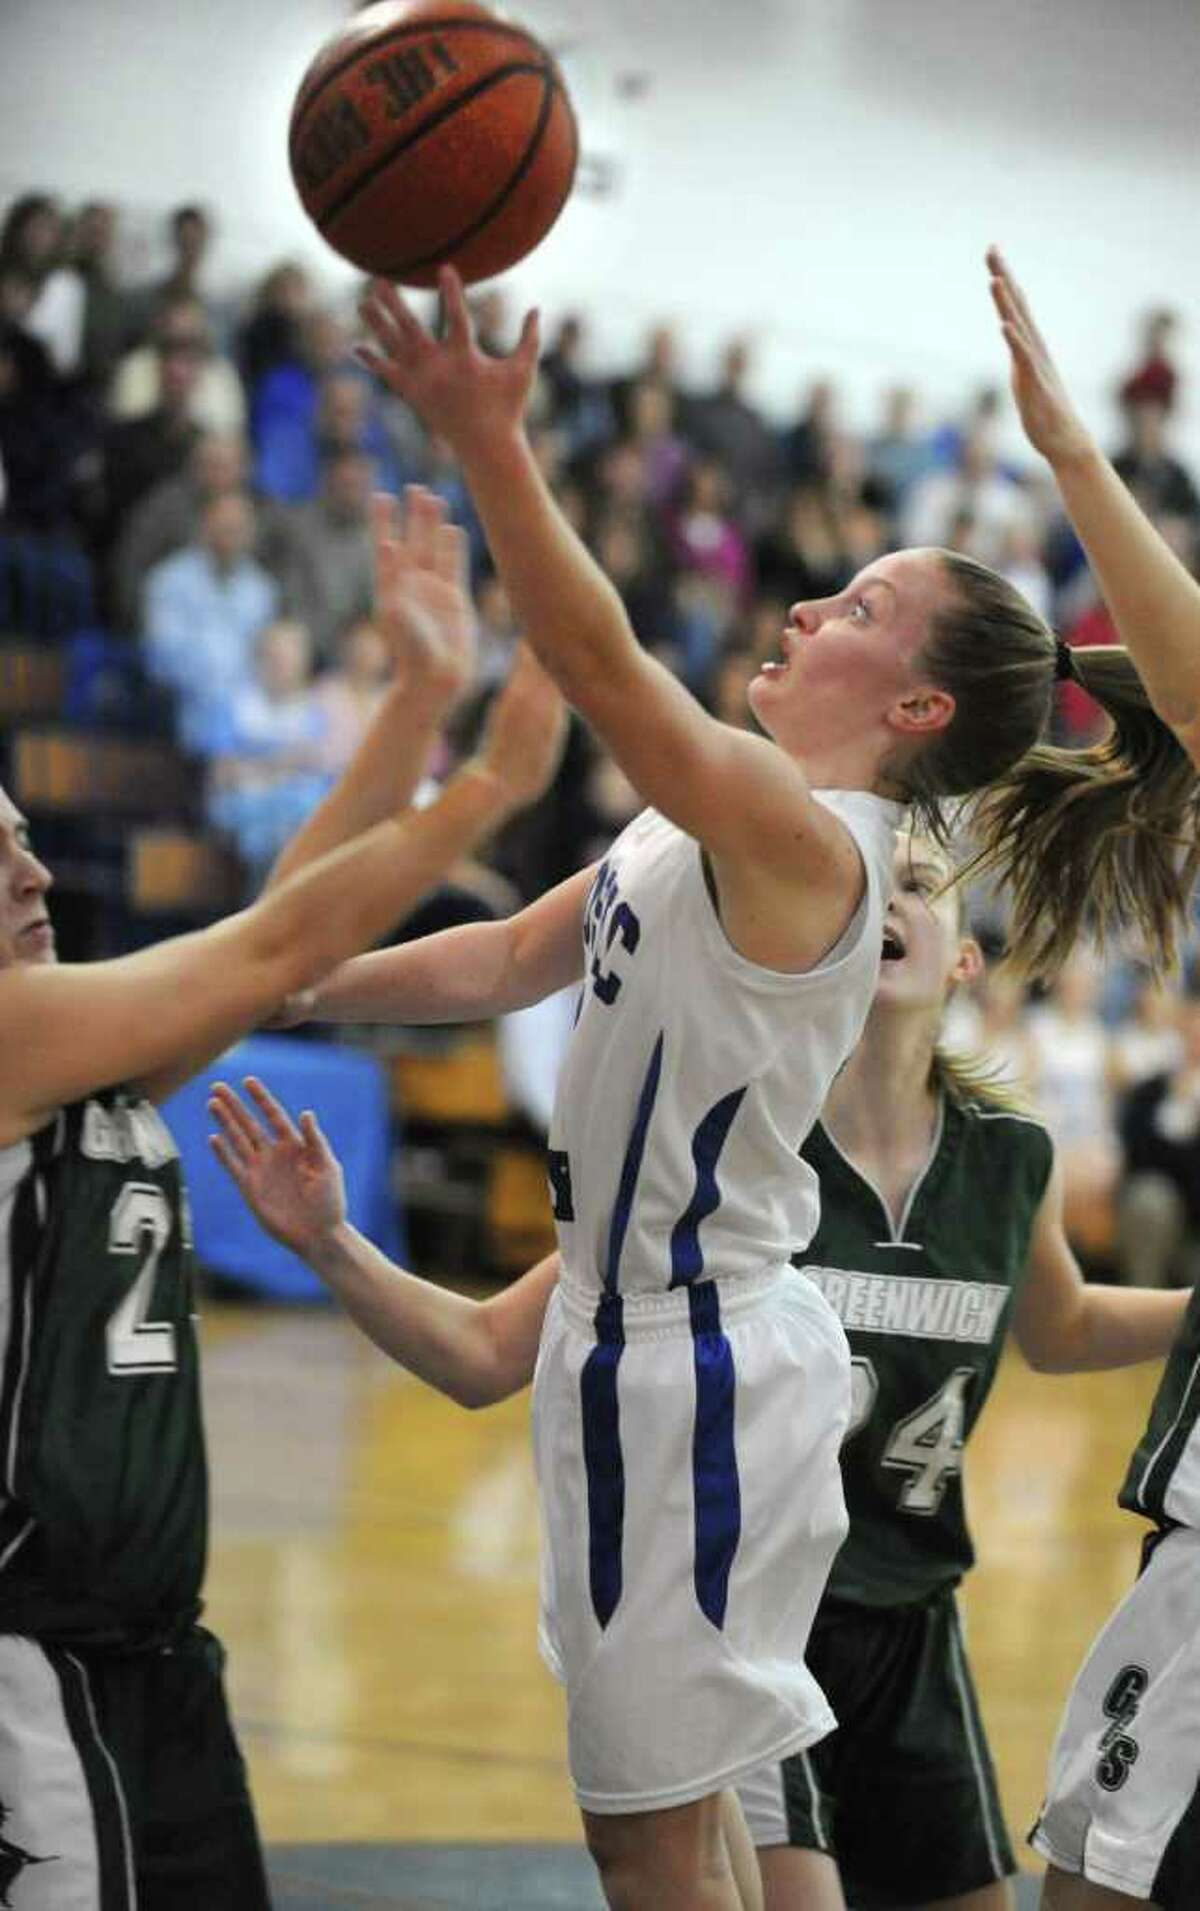 Hoosic Valley guard Cassidy Chapko drives to the basket during a basketball game against Greenwich on Wednesday, Feb. 8, 2012 in Schaghticoke, N.Y. (Lori Van Buren / Times Union)